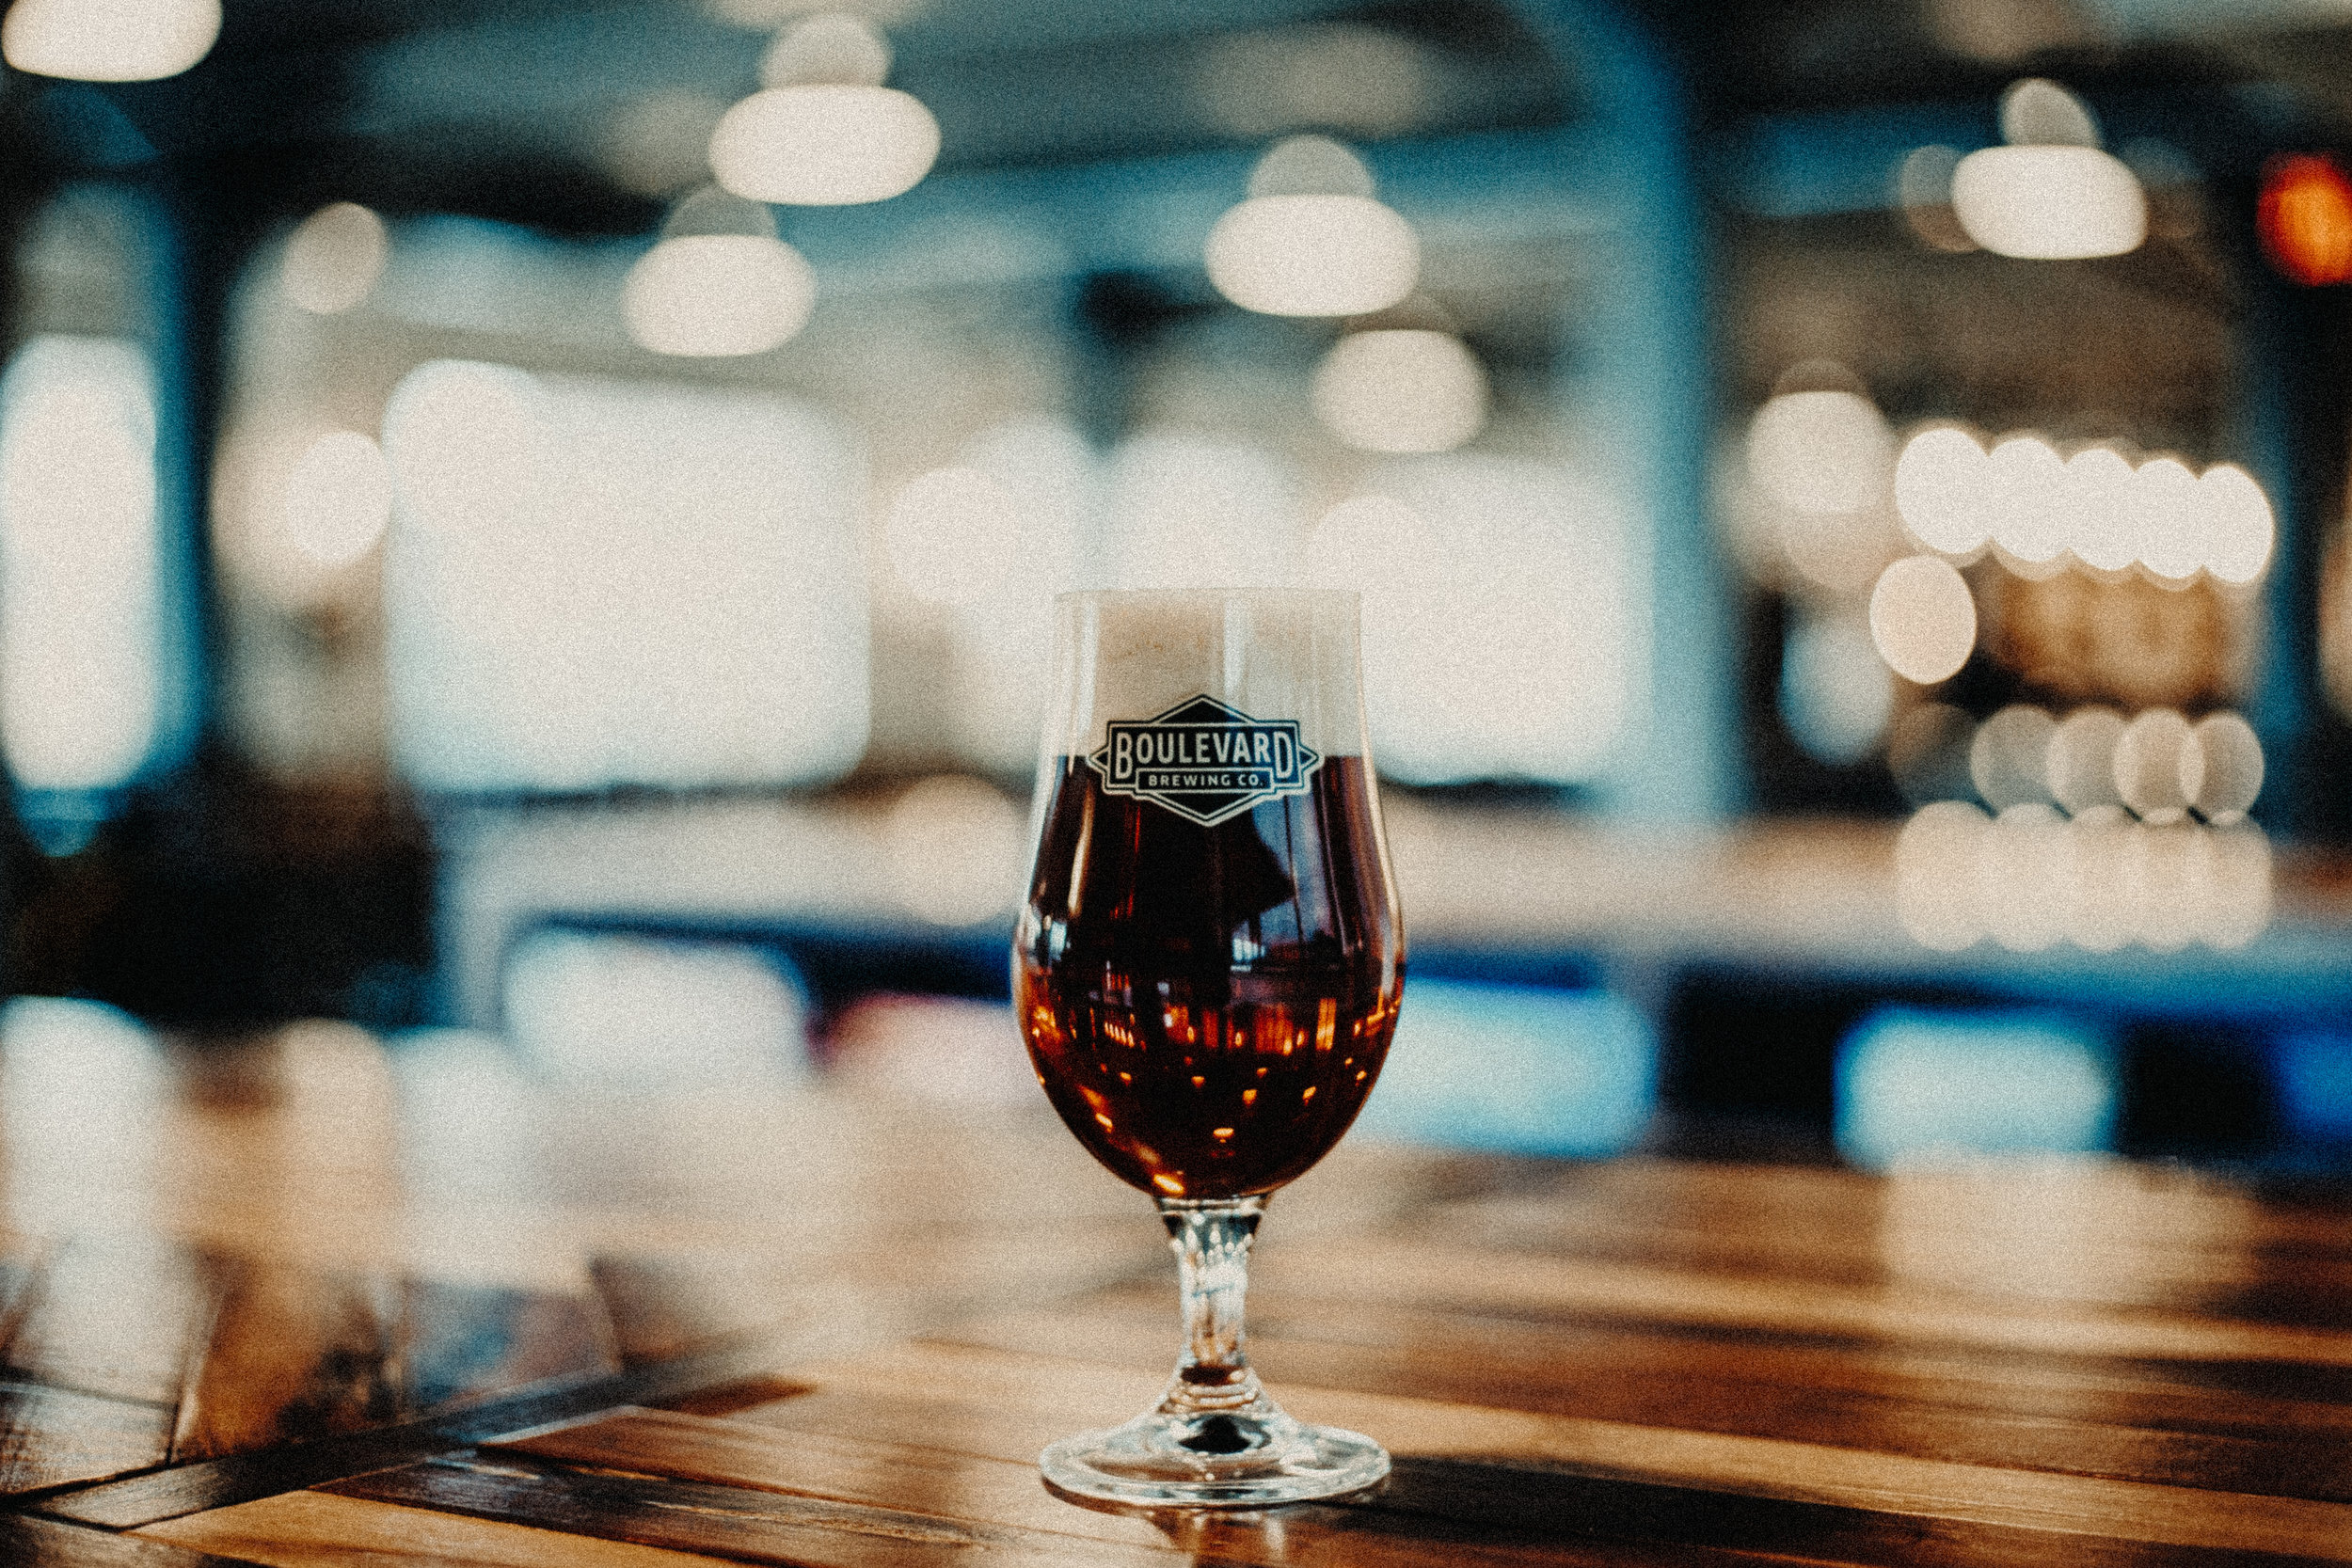 Lifestyle/Product photography for Boulevard Brewing Co.